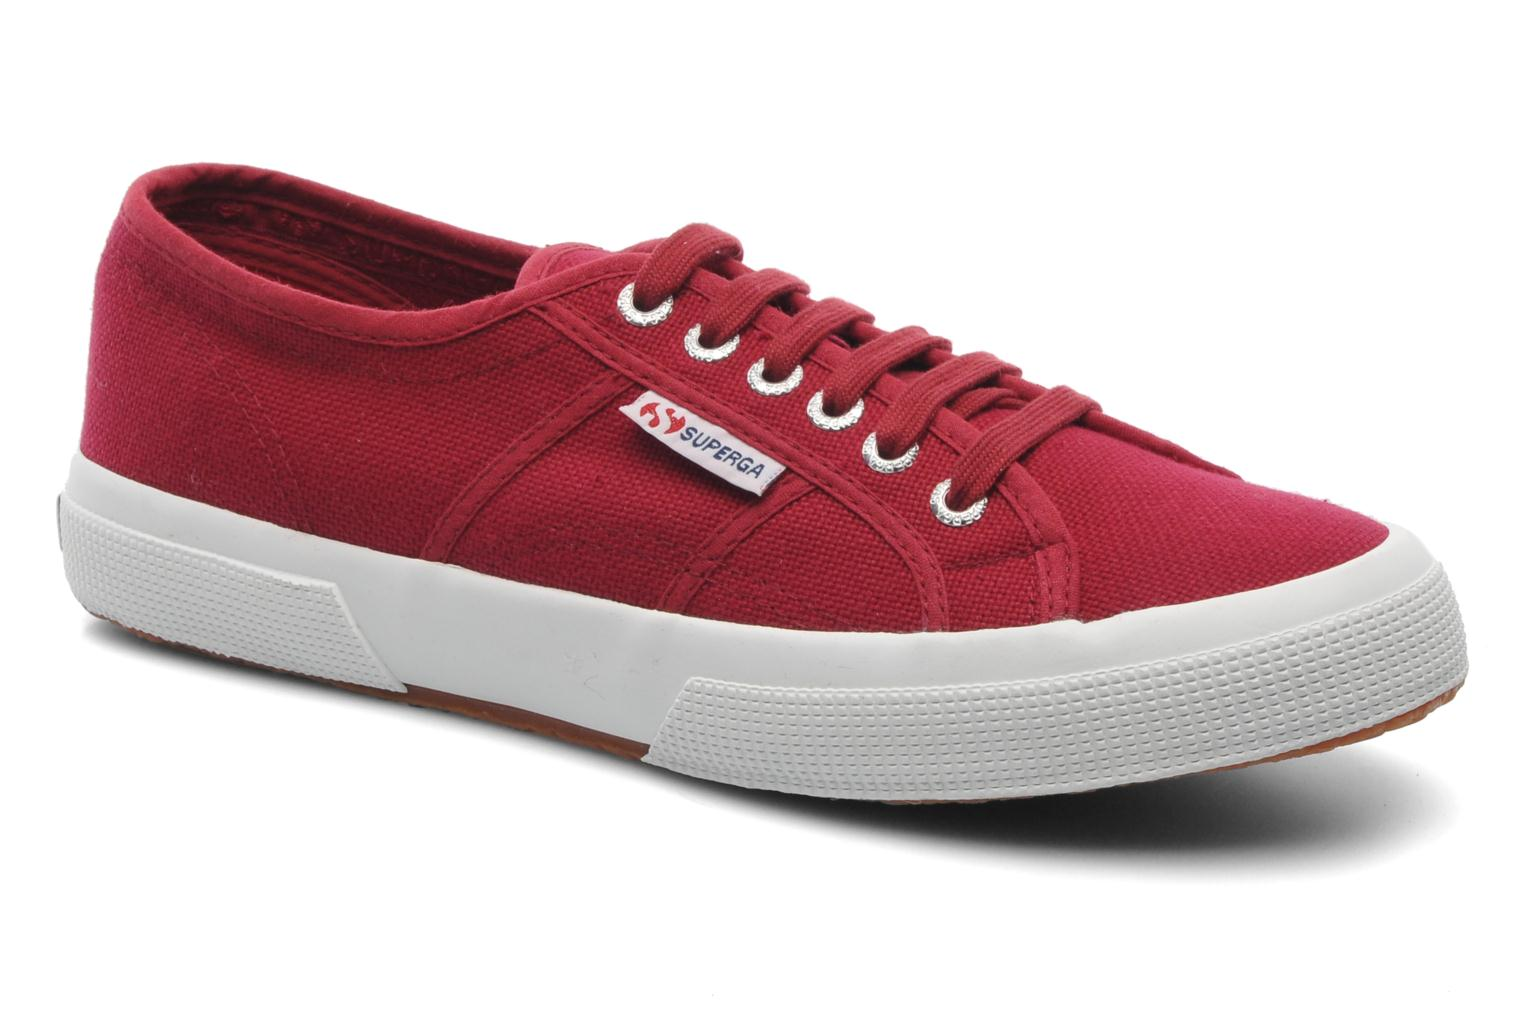 Marques Chaussure homme Superga homme 2750 Cotu M Scarlet